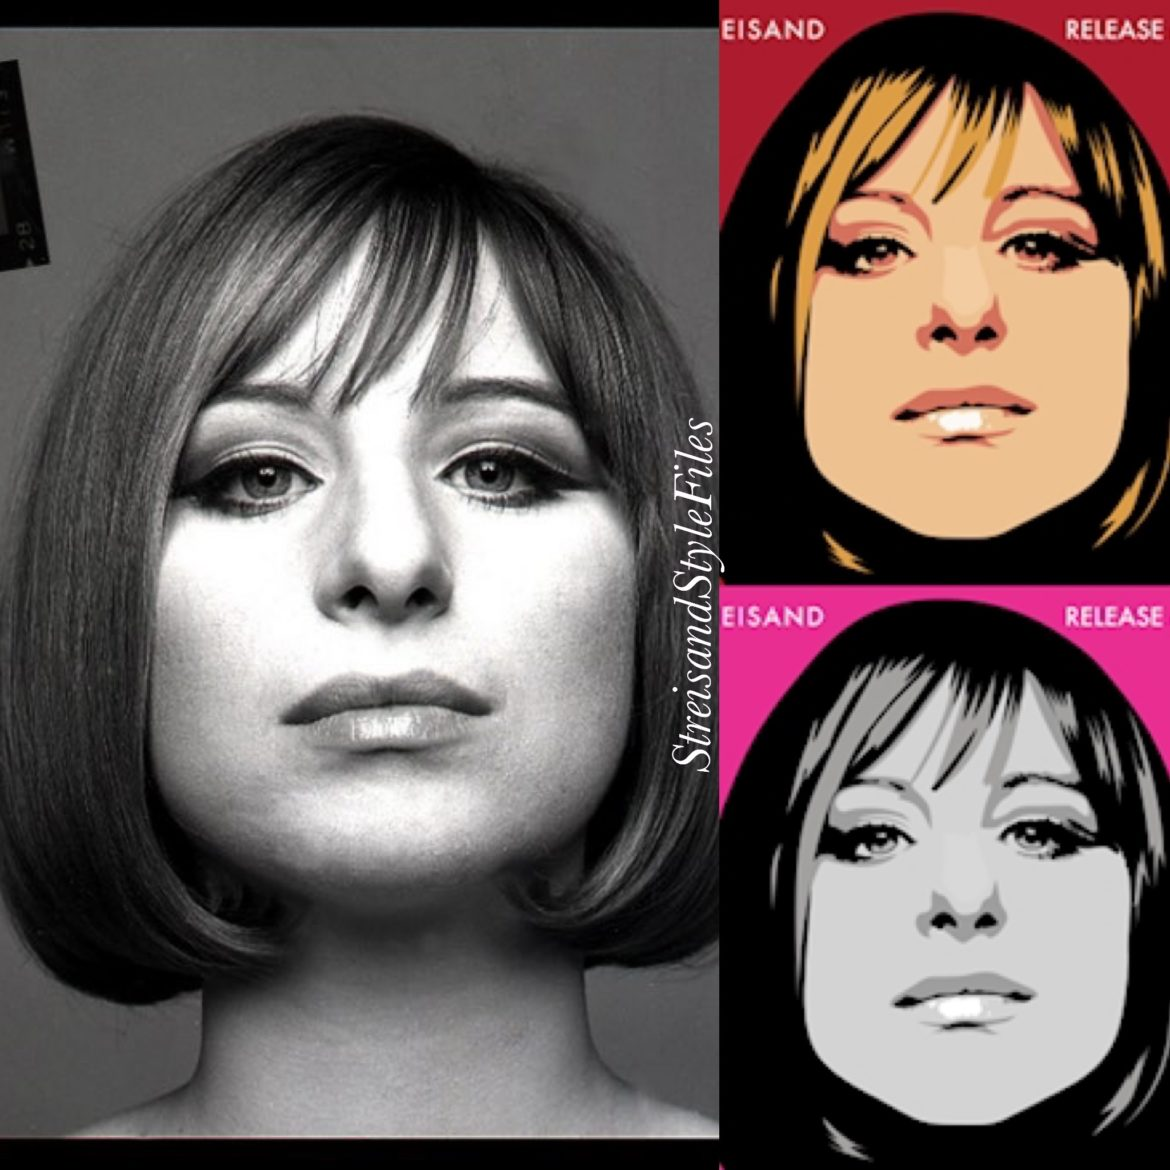 Release Me 2 album cover photo by Bert Stern